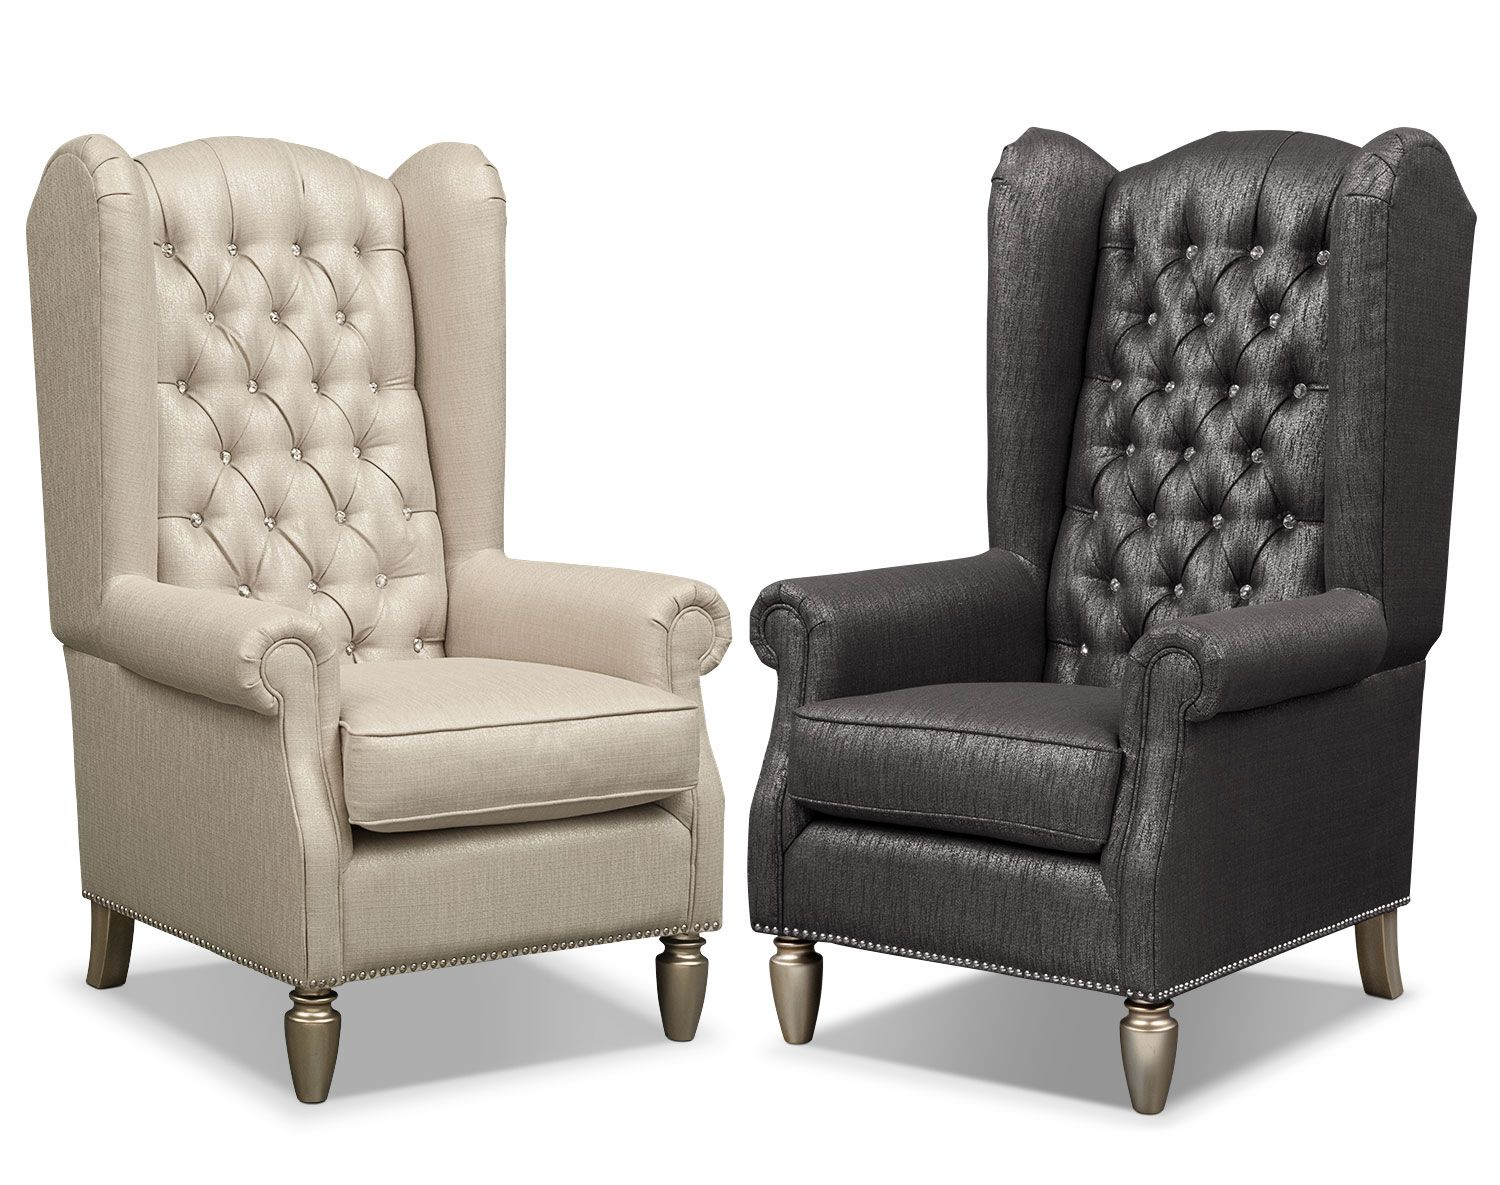 Bedazzled Bejeweled The Cleo Accent Chair Collection